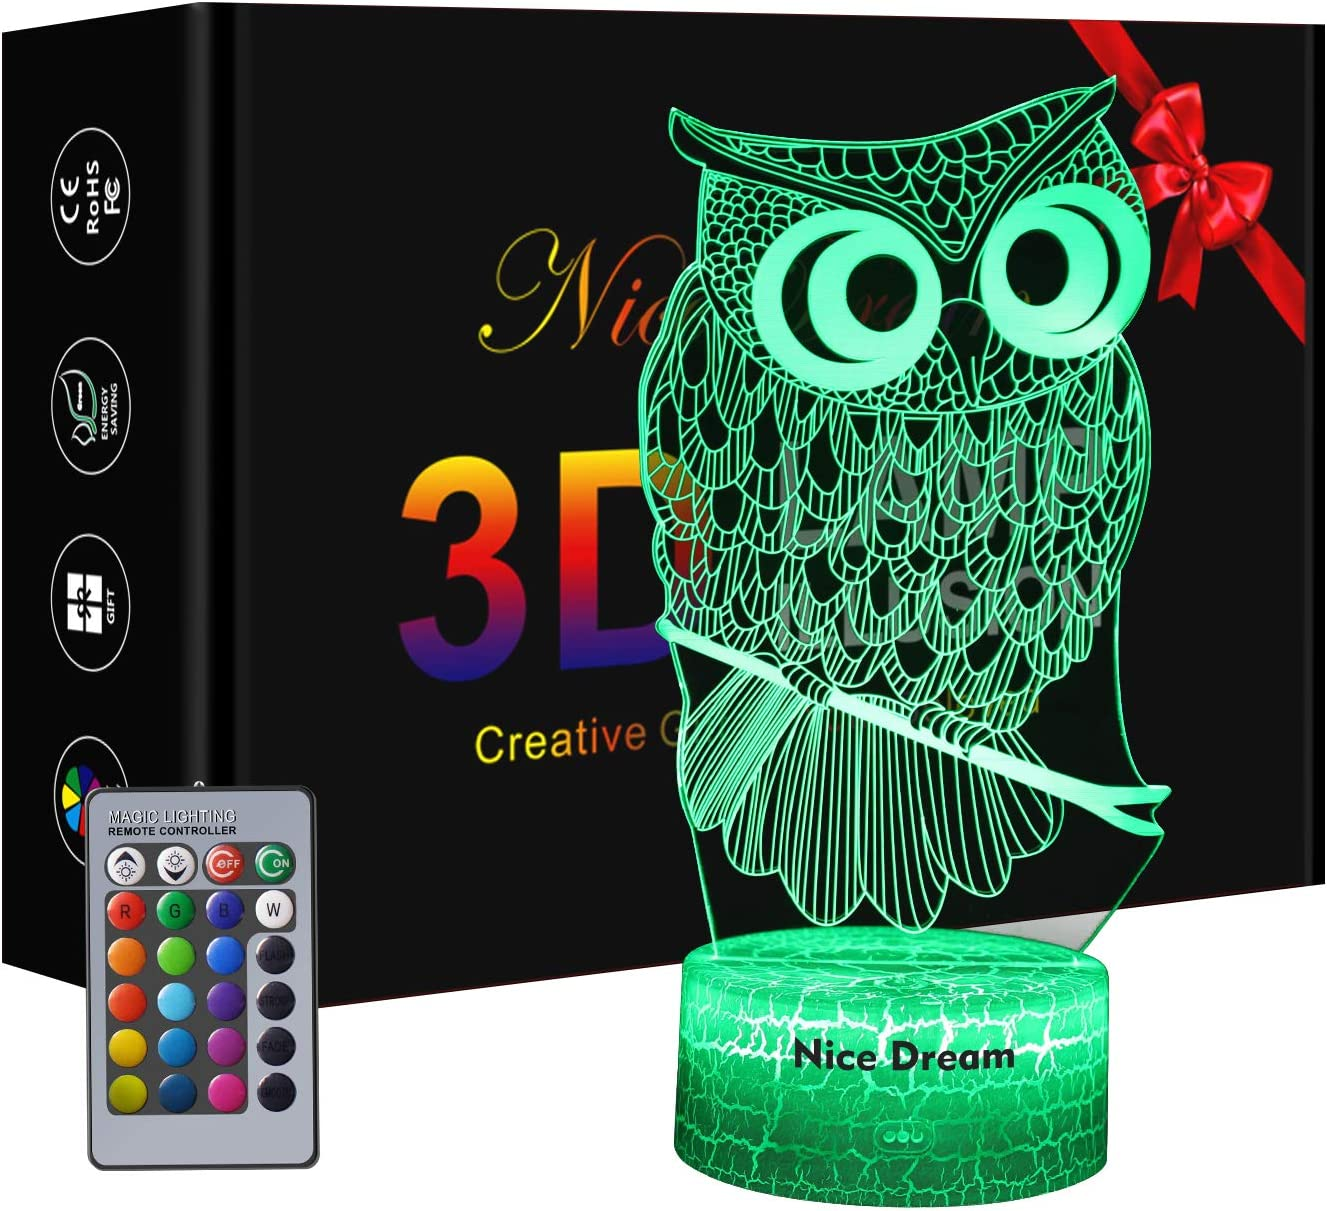 Owl Gift Owl 3D Night Light for Kids, Owl Decor 3D Illusion Lamp with Remote Control, 16 Colors Dimmable USB Powered Touch Control with Crack Base and Remote, Gift for Lovers Boys Girls Kids